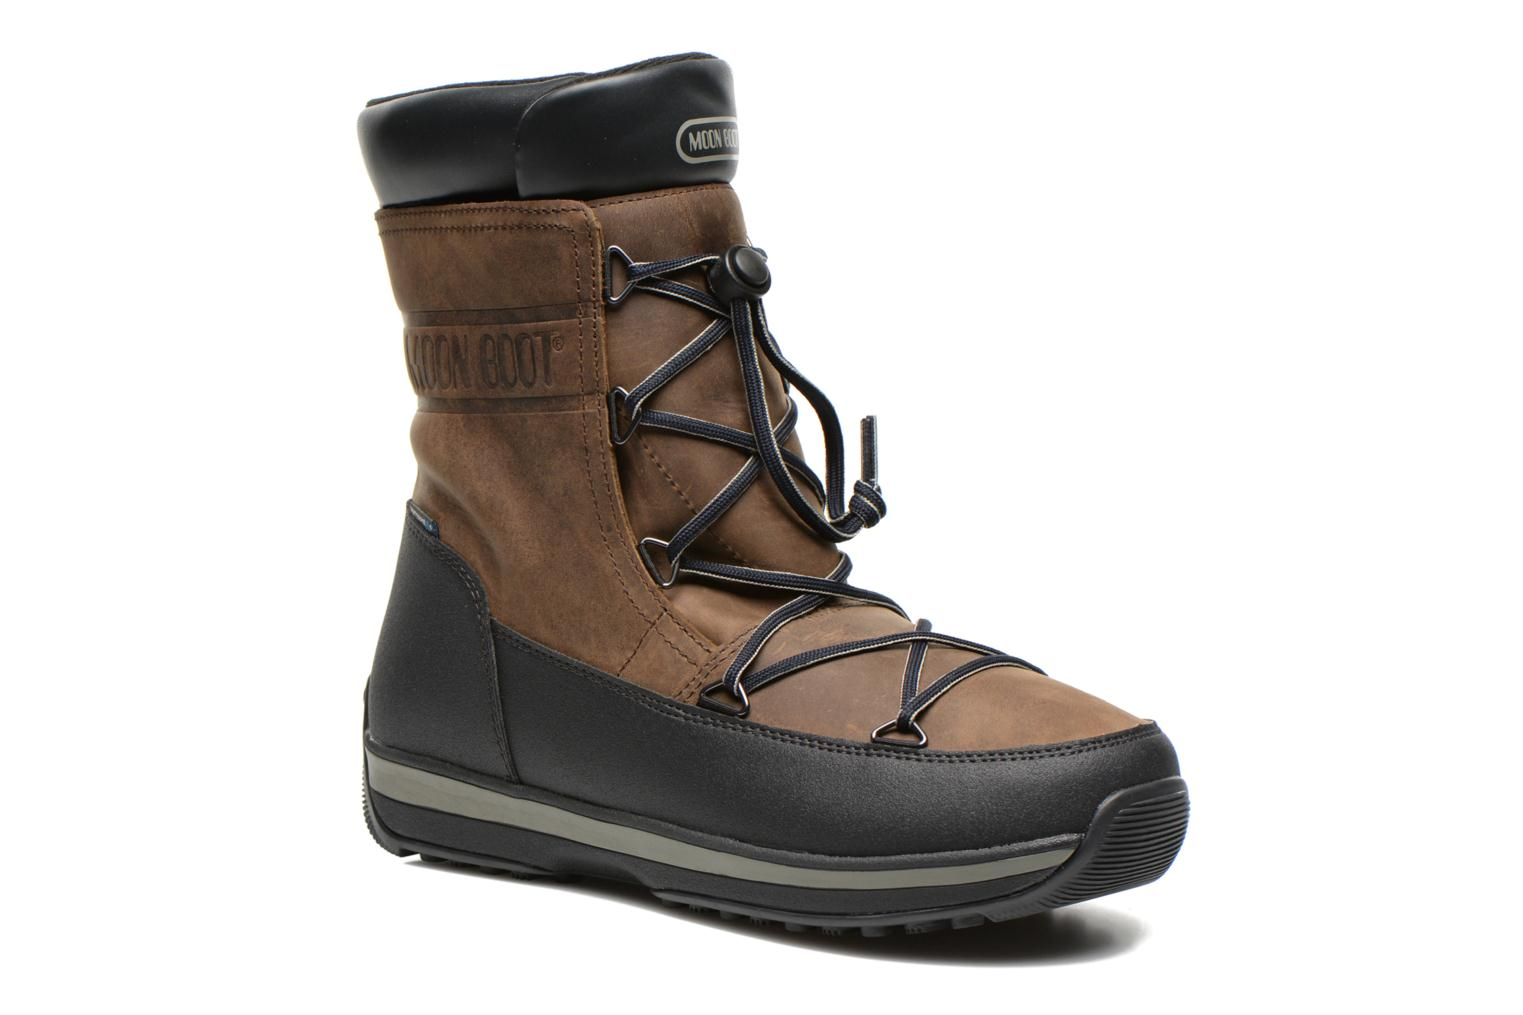 Chaussures Moon Boot beiges homme 3C3Ut